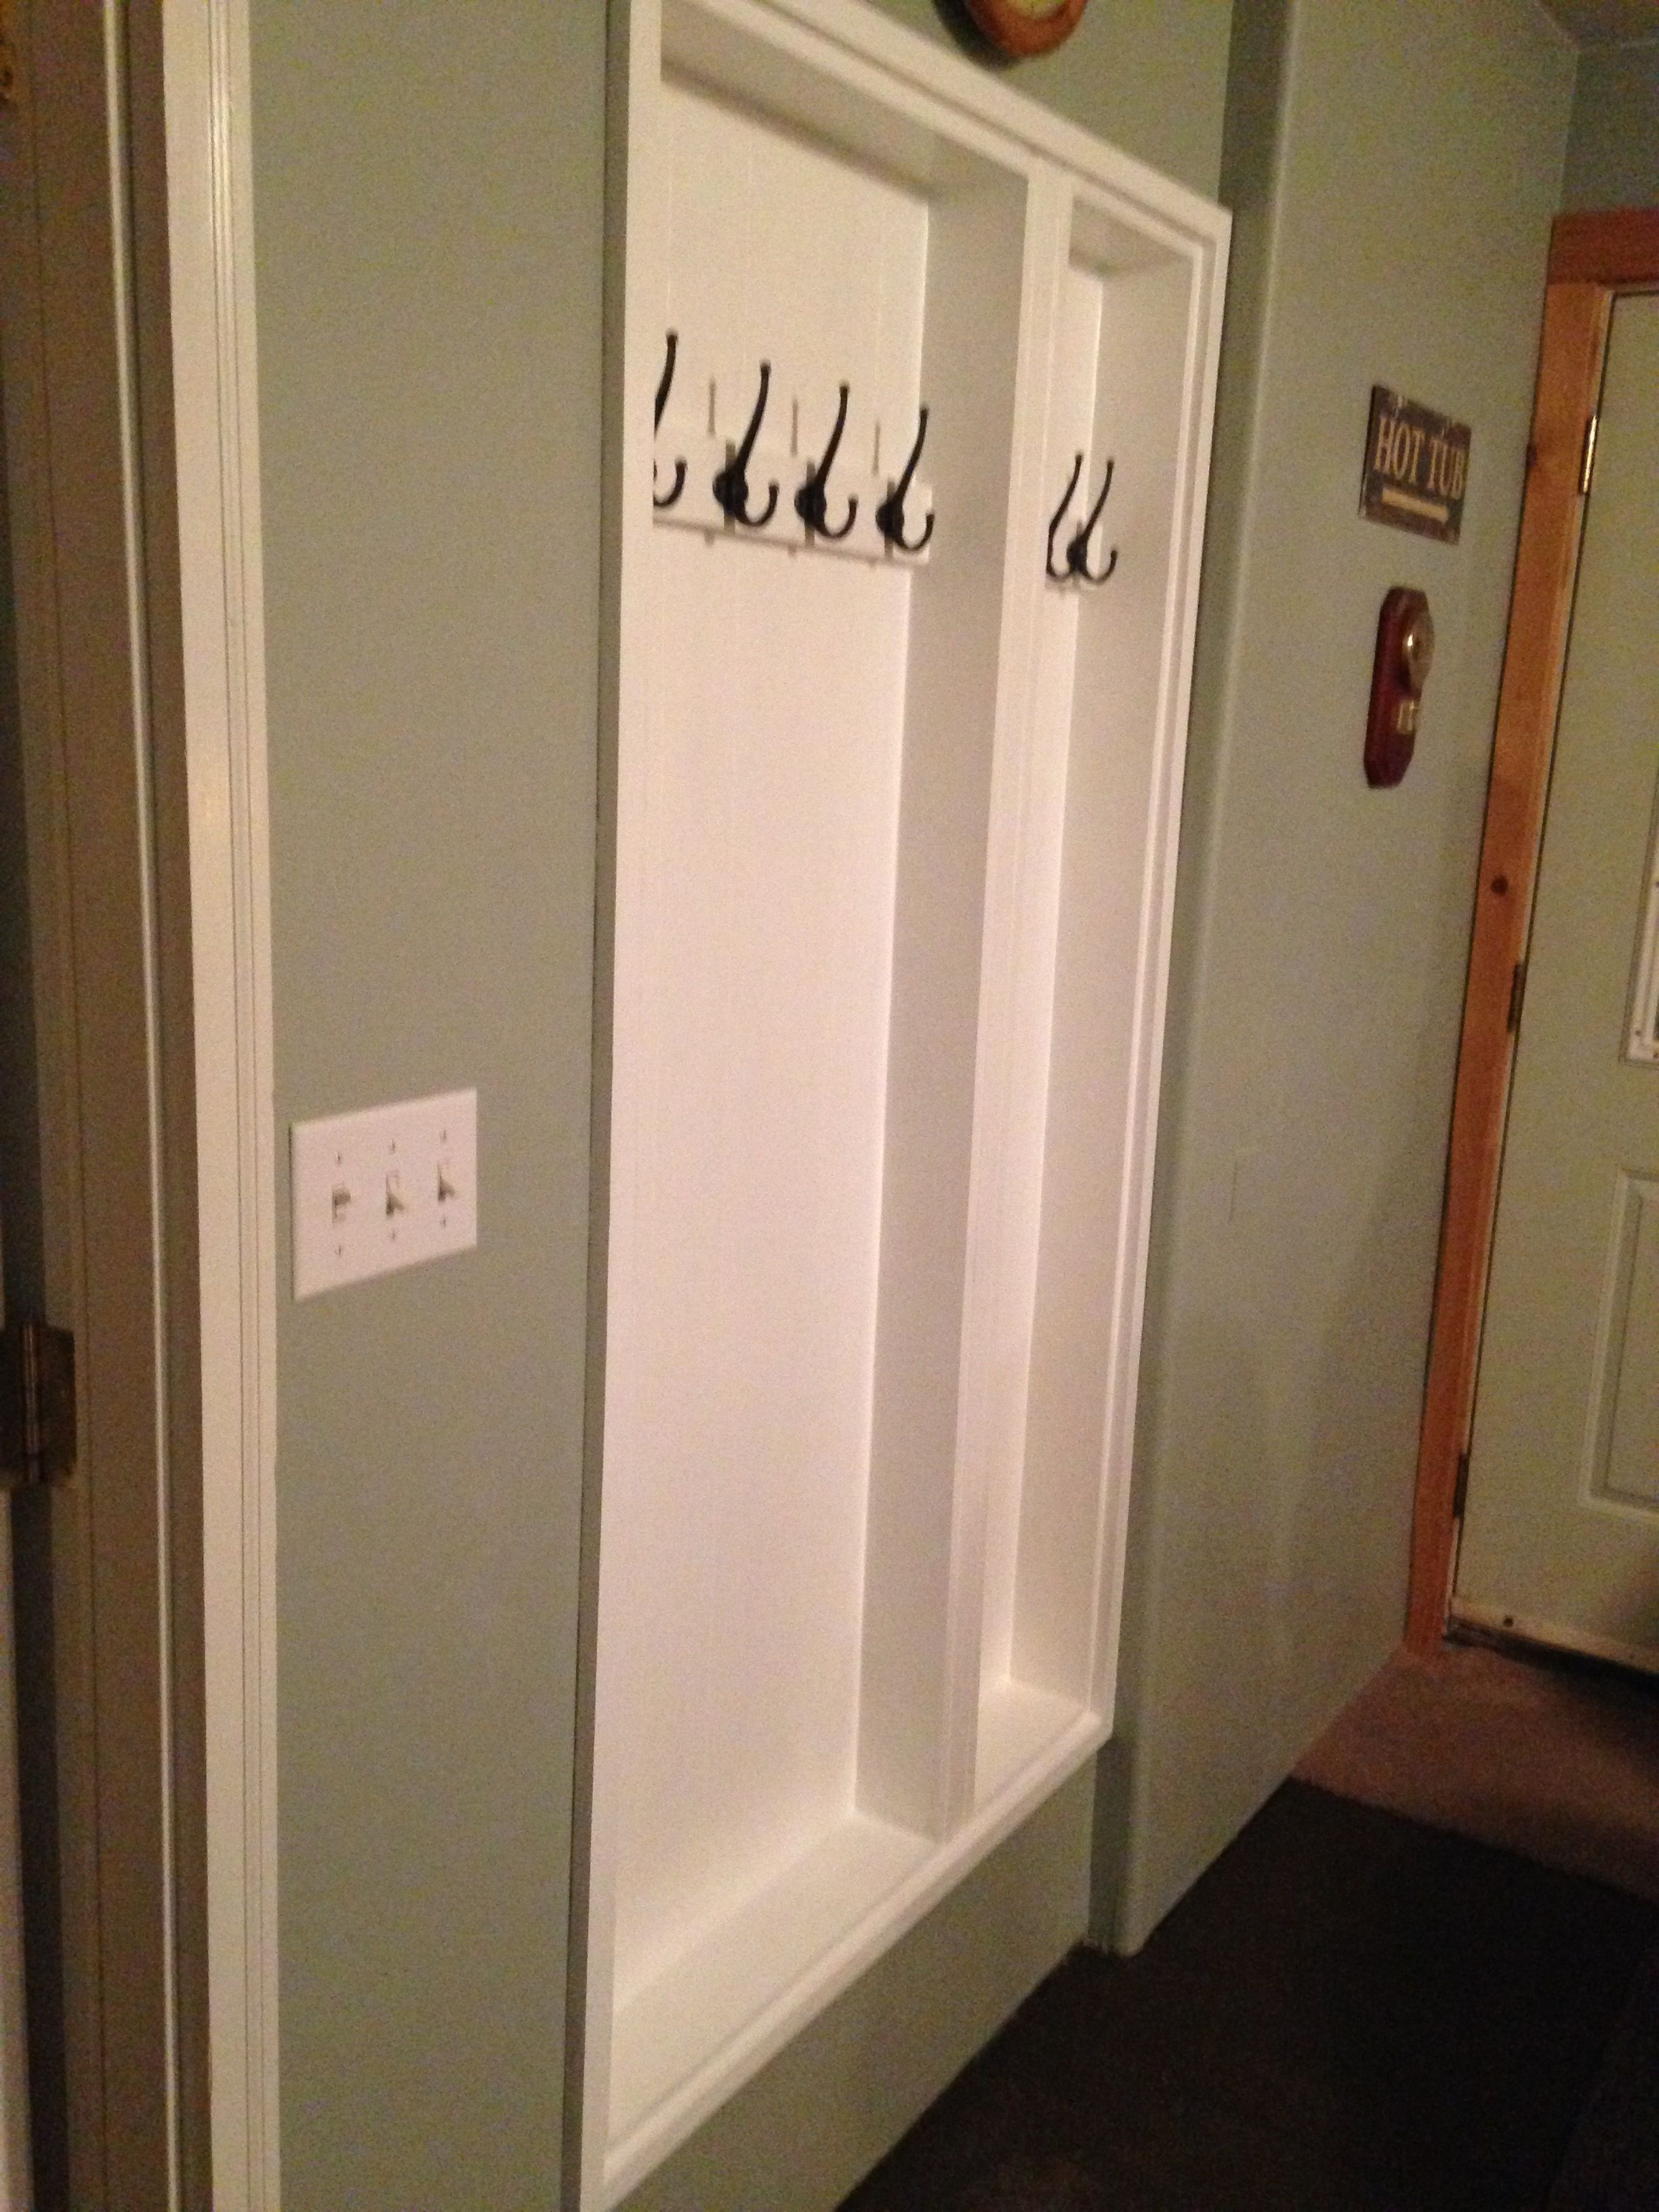 Between The Studs Coat Rack Hallway Storage Built In Bathroom Storage Home Diy